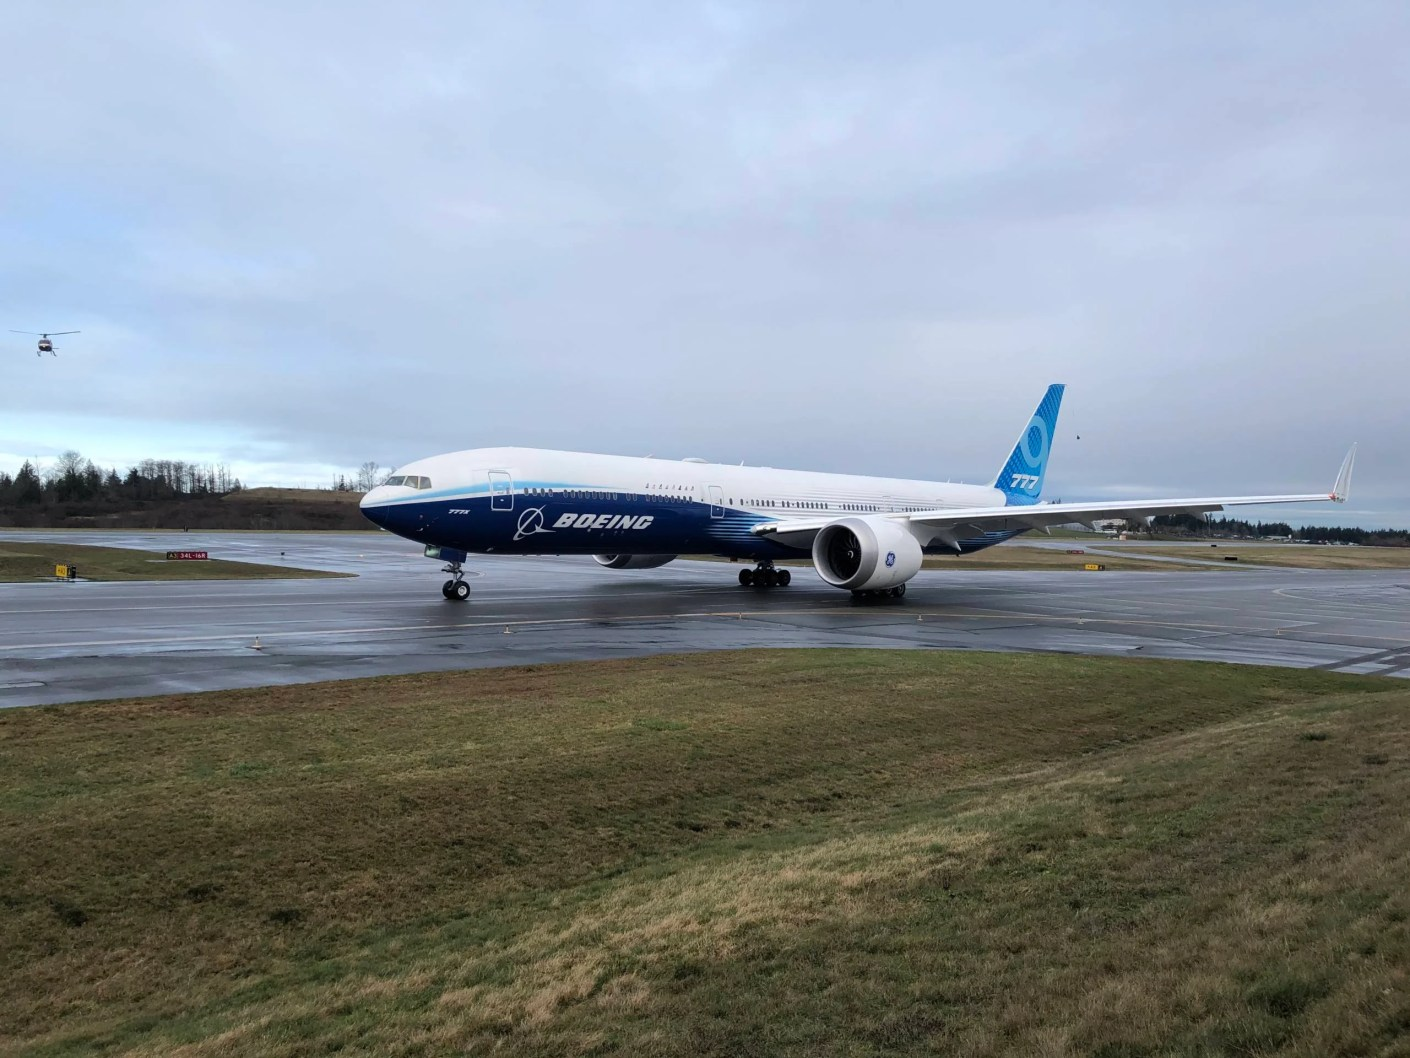 Boeing's 777-9 taxiing before its first takeoff. (Photo by Zach Wichter/The Points Guy.)